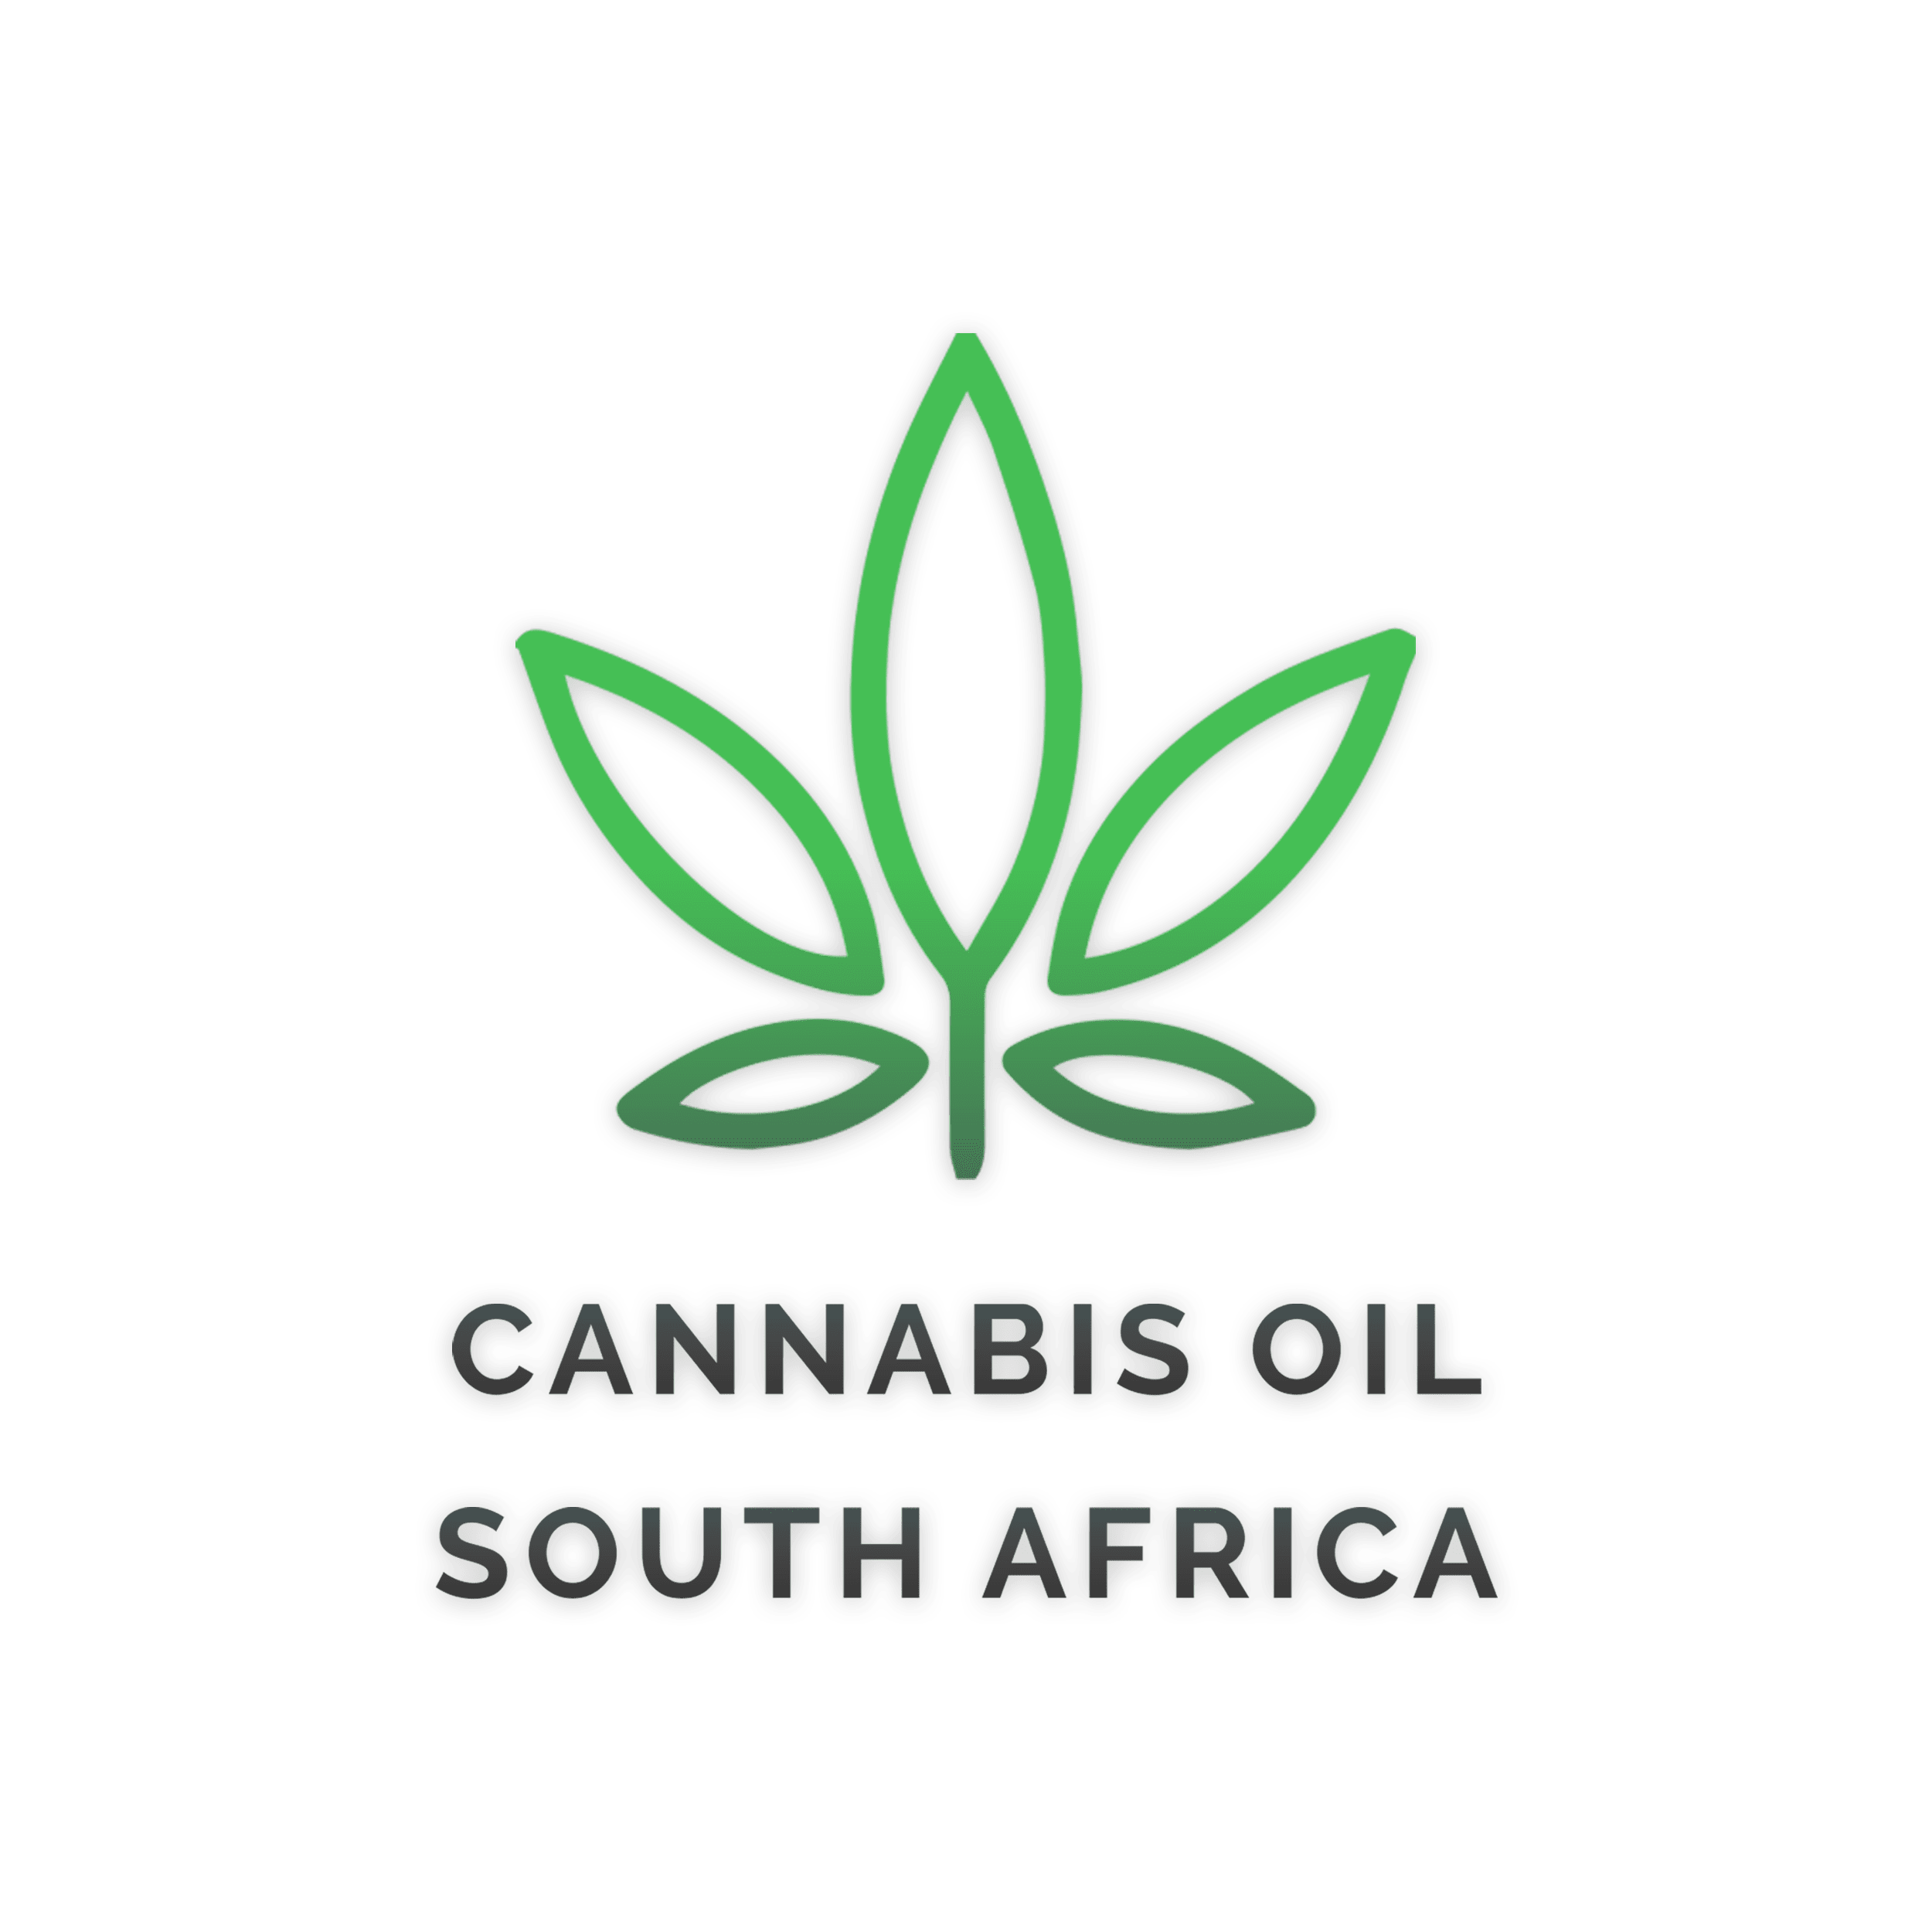 Cannabis Oil South Africa